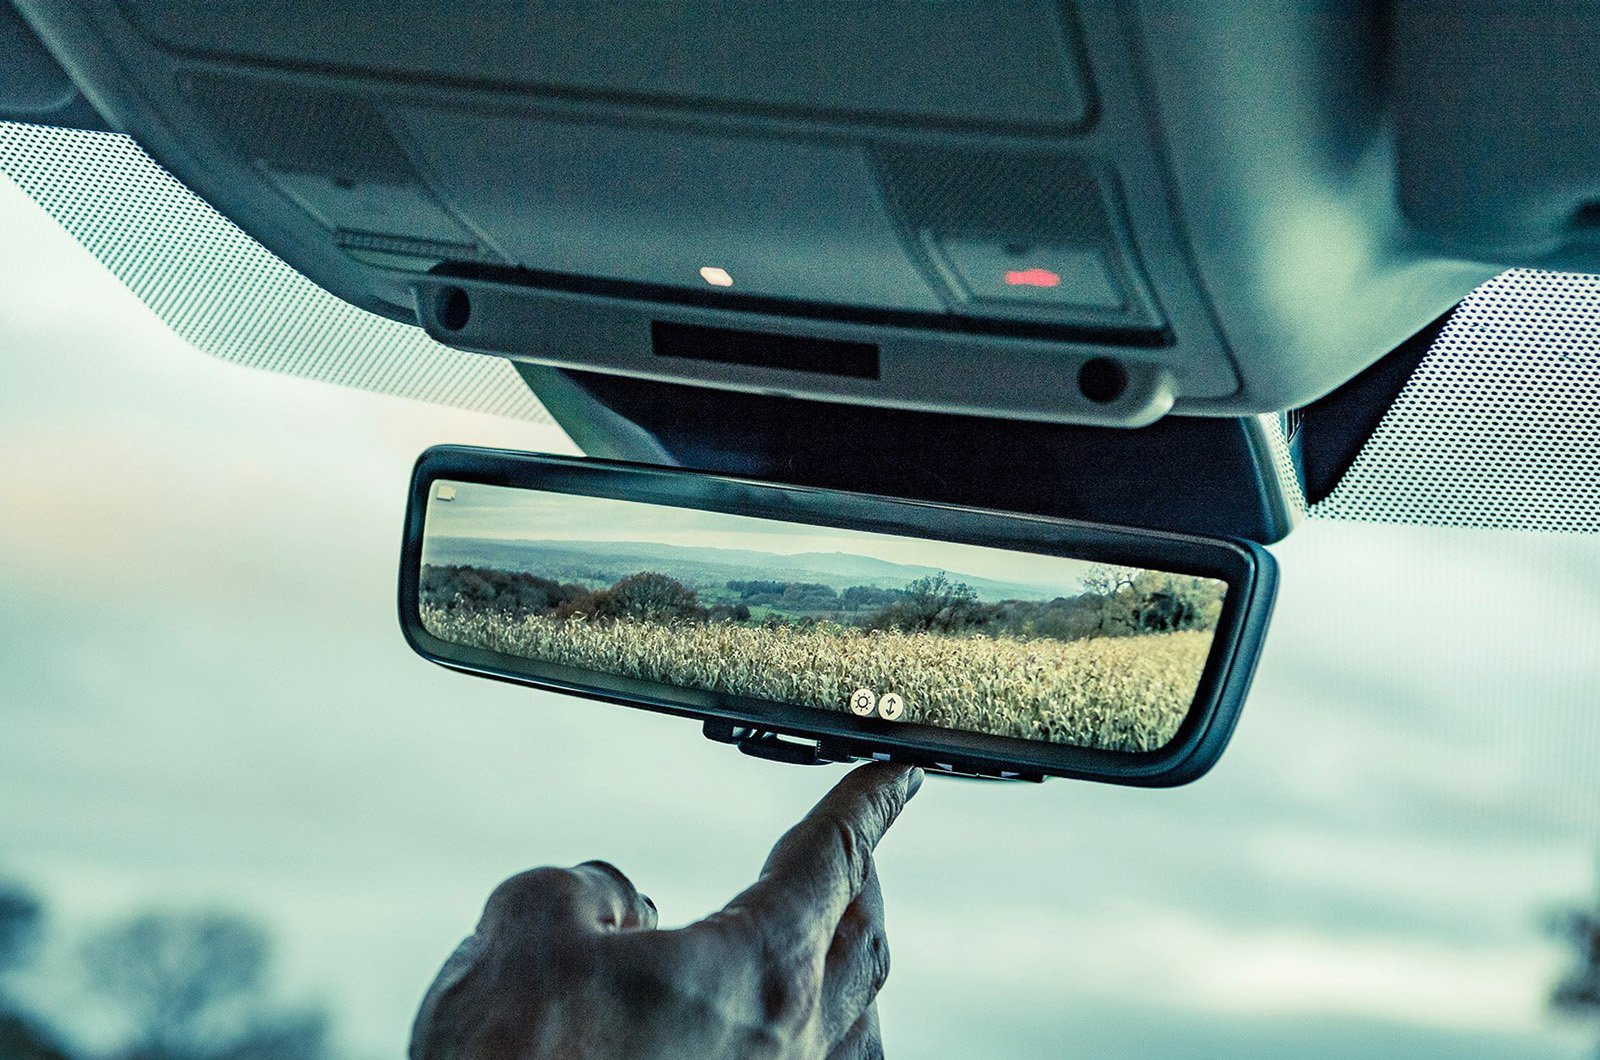 Land Rover - ClearSight Rear View Mirror on Range Rover Evoque